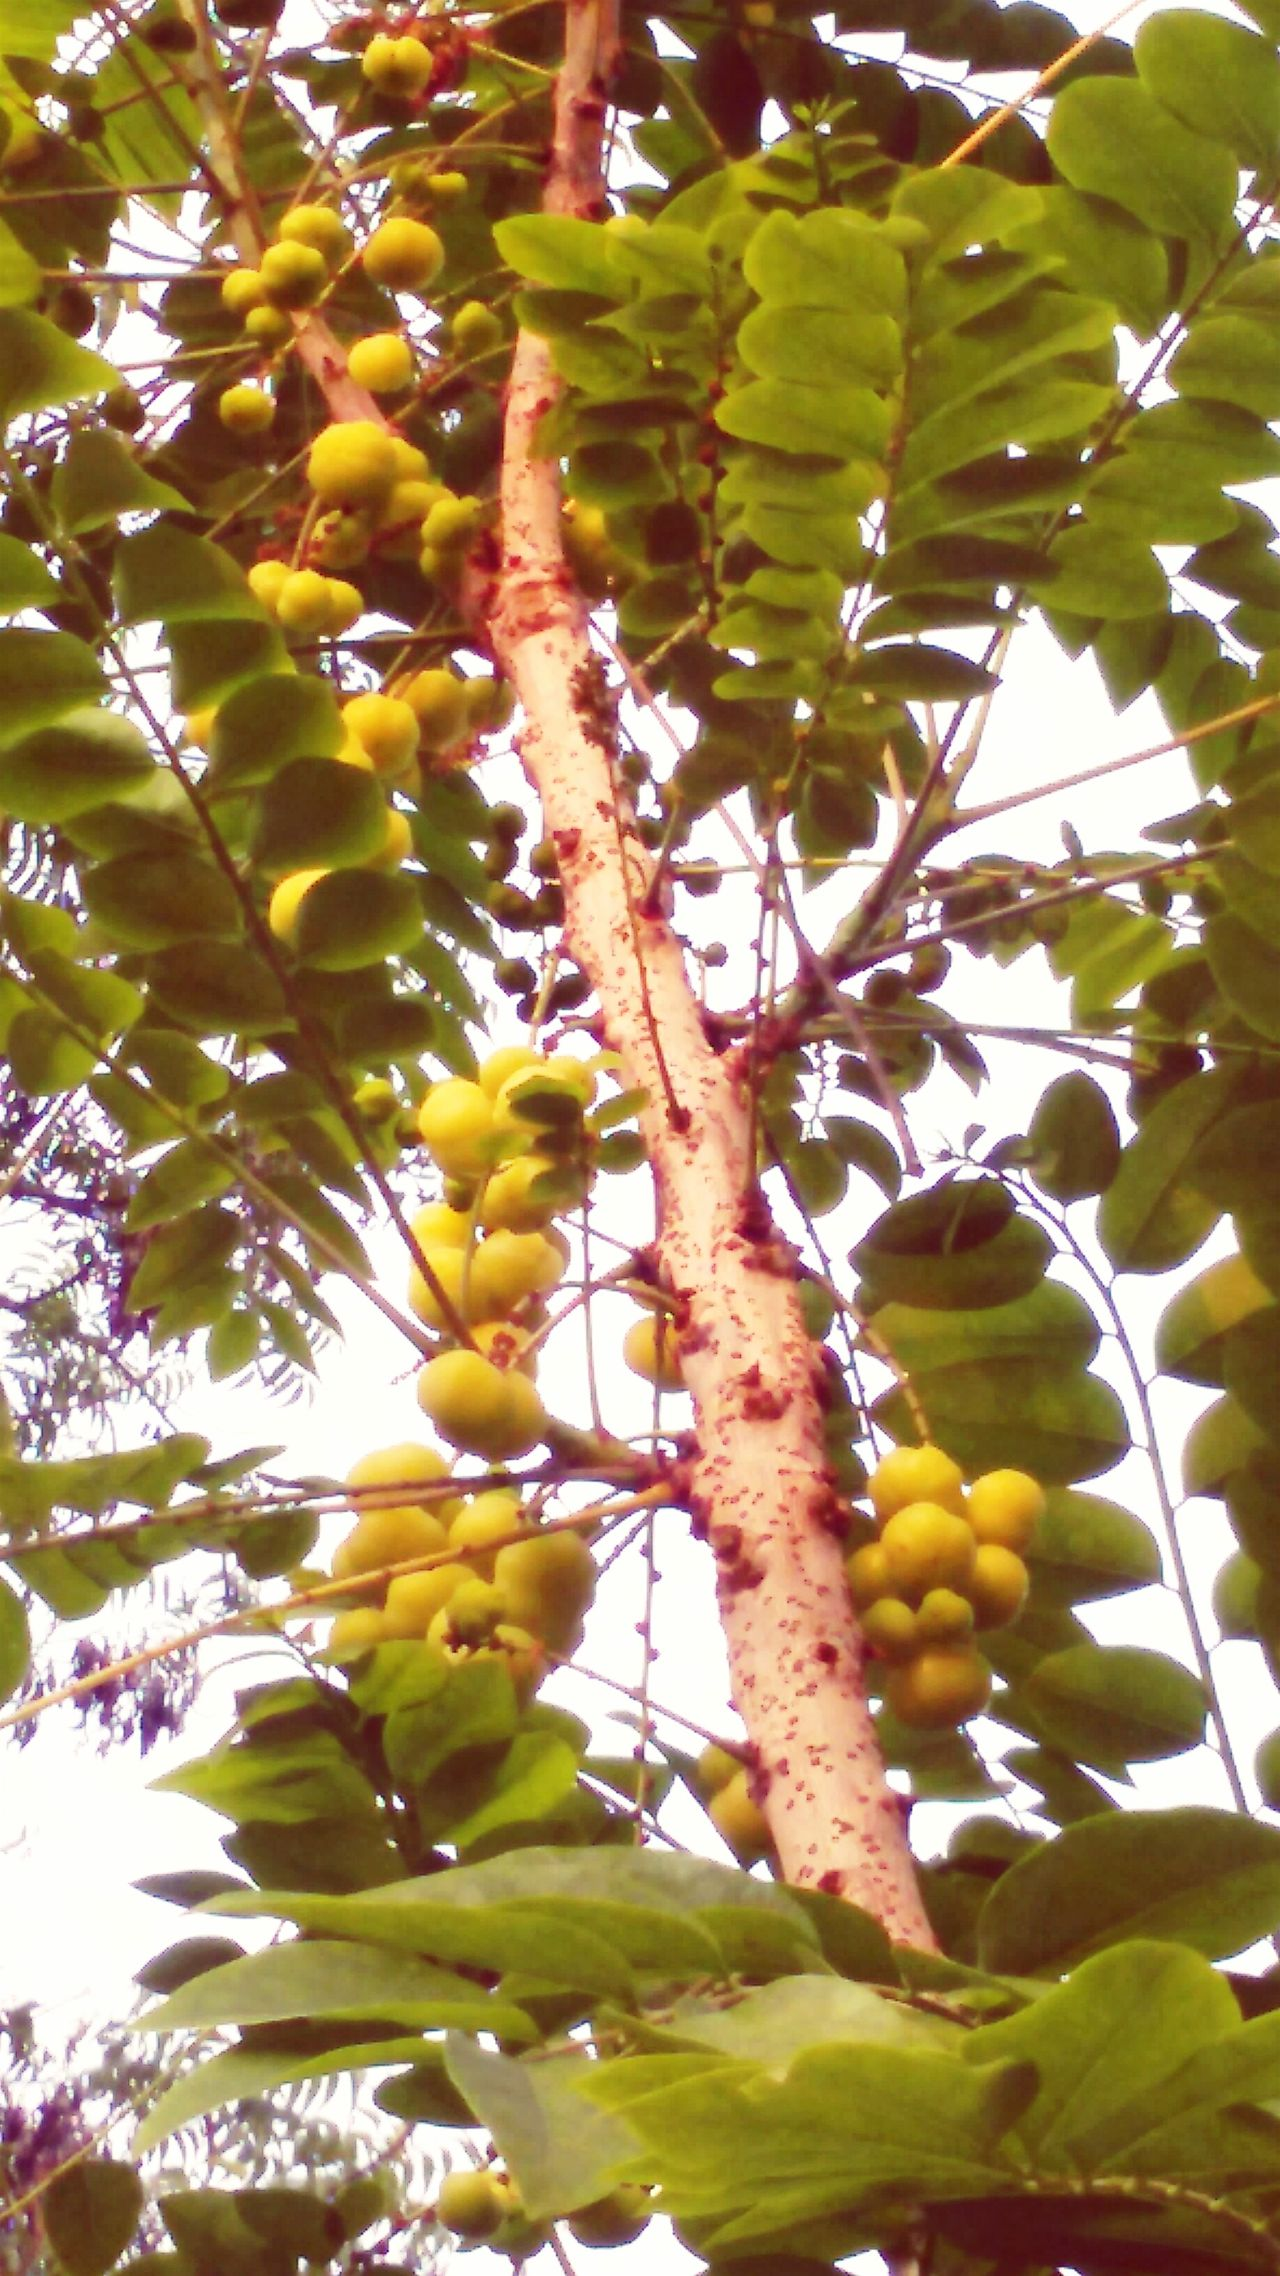 Indian AMLA Fruit Garden Photography My Garden @my Home Taken By Me Taken From Smartphone Camera Taken From Samsung Galaxy S3 Check This Out Early Morning Tree Lover Green Love